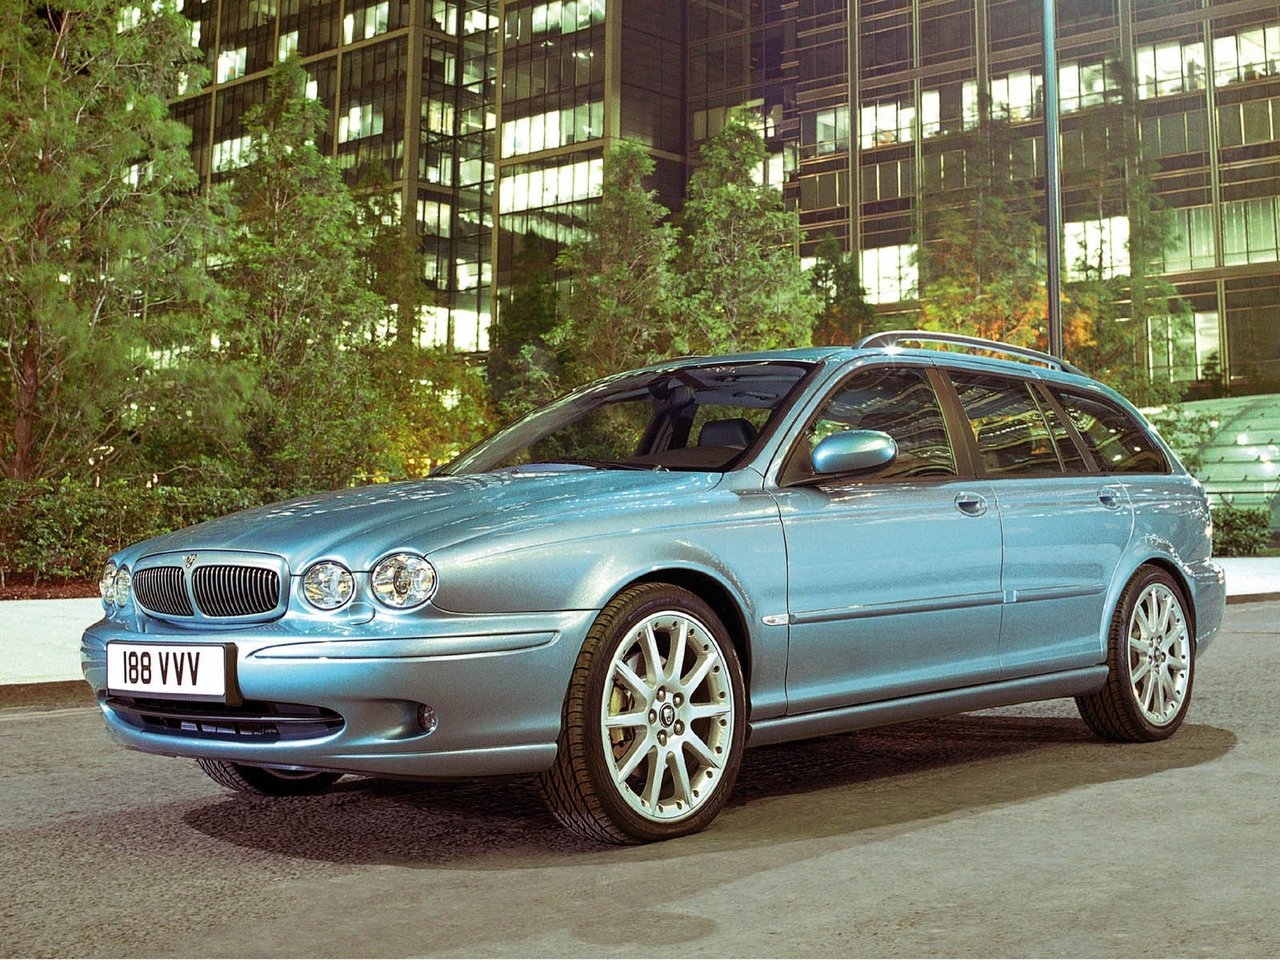 Автомобиль Jaguar X-Type